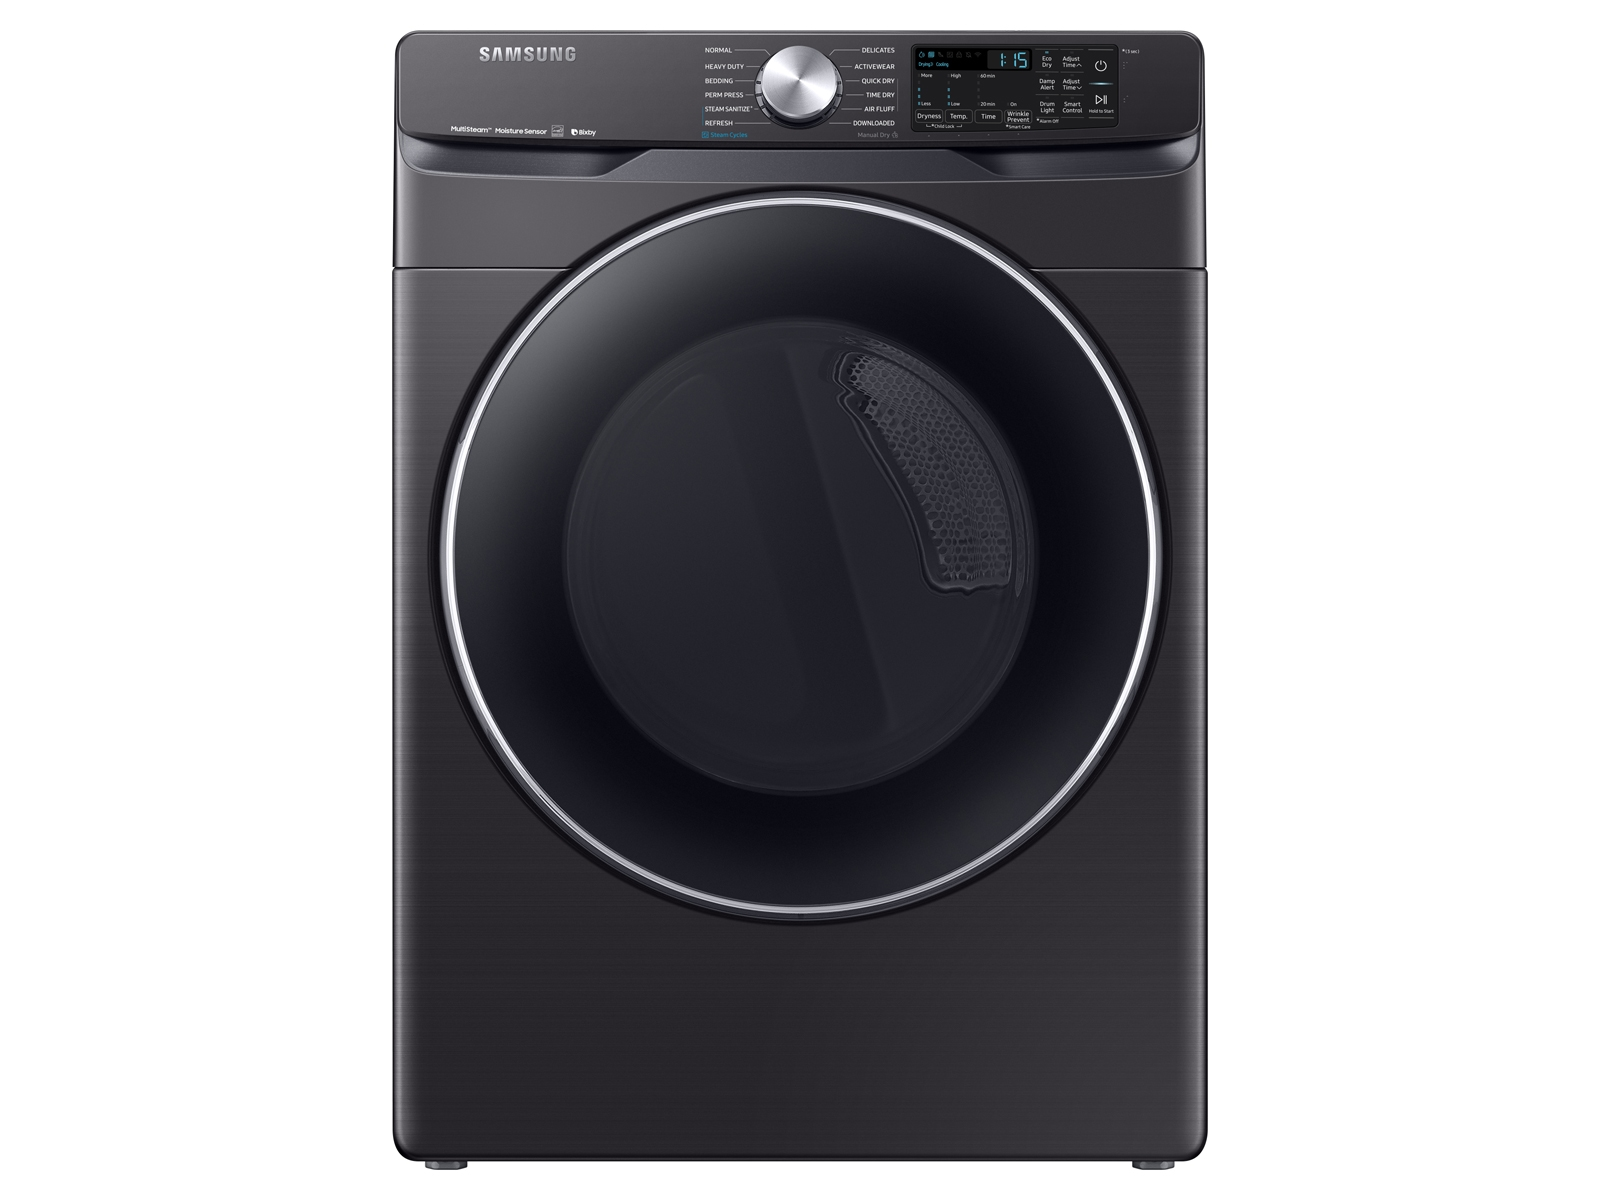 Samsung 7.5 cu. ft. Smart Electric Dryer with Steam Sanitize+ in Black Stainless Steel, Fingerprint Resistant Black Stainless Steel